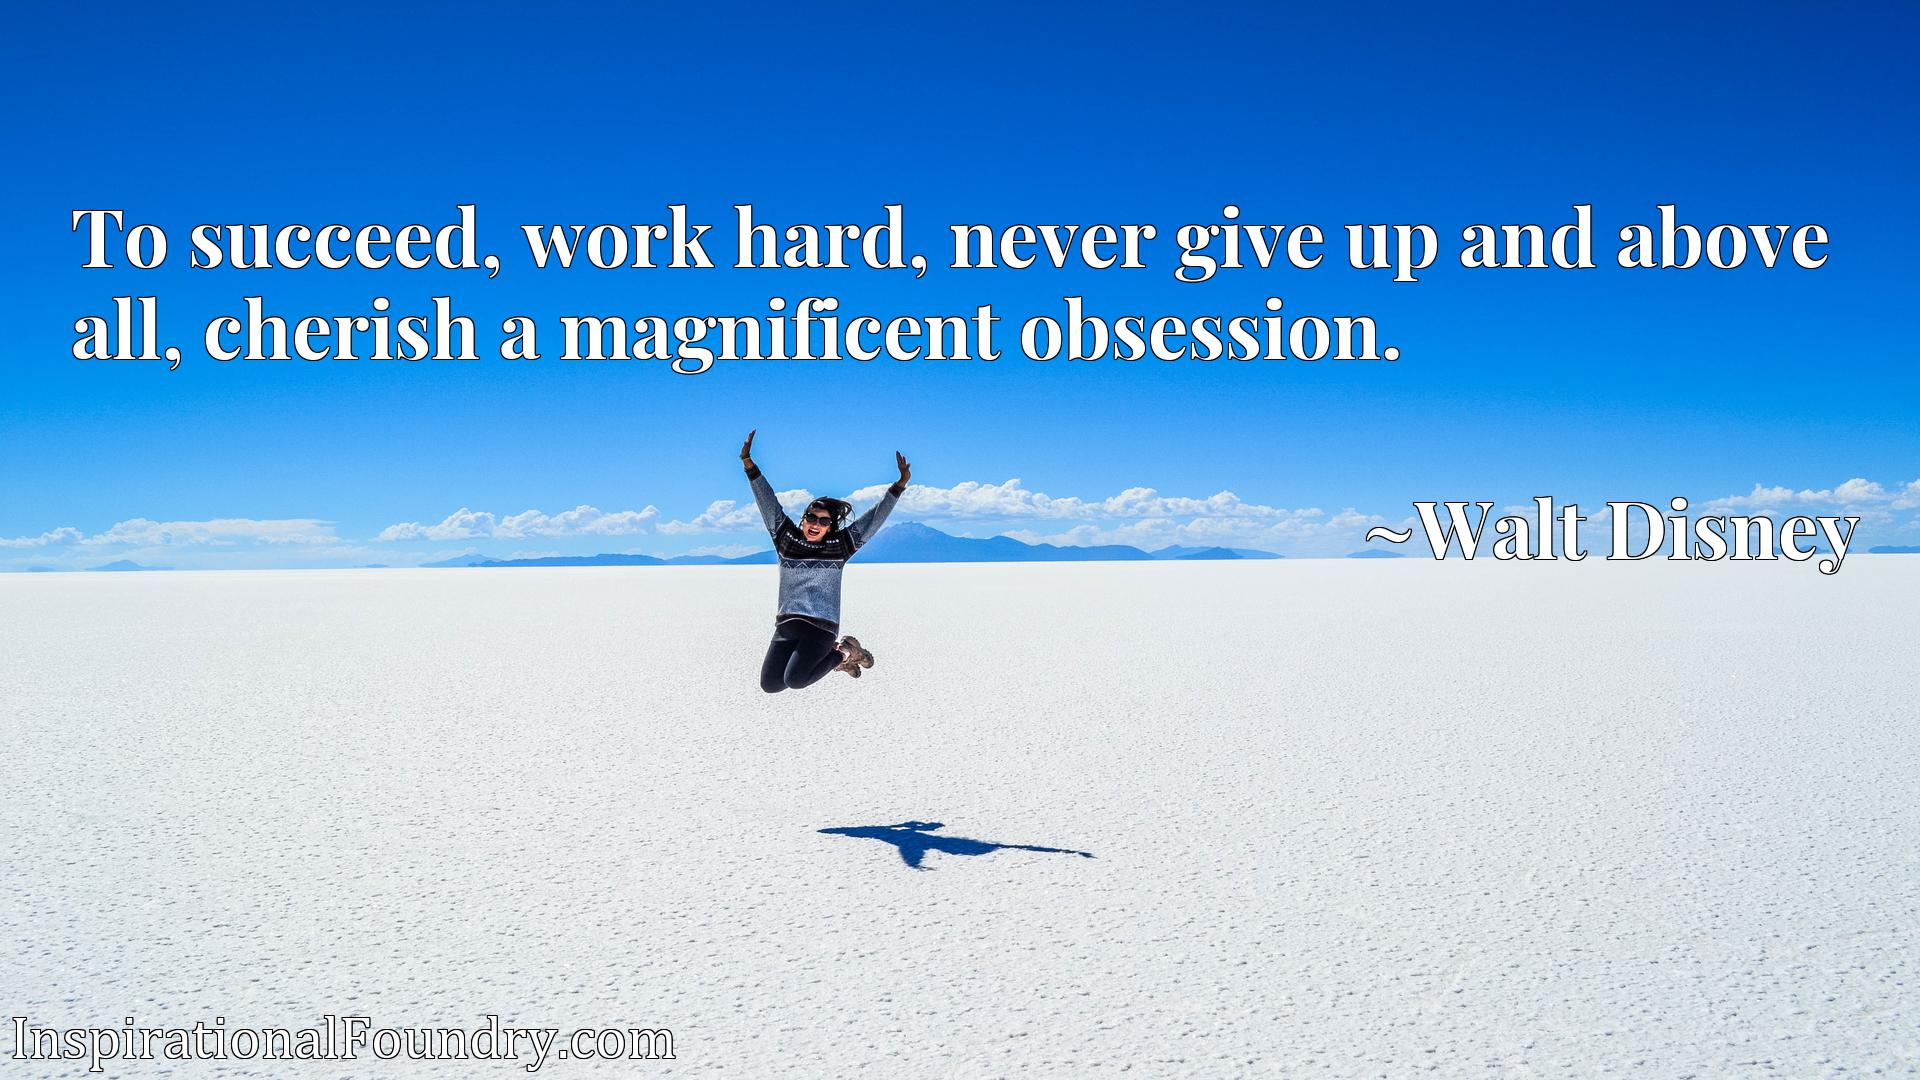 To succeed, work hard, never give up and above all, cherish a magnificent obsession.